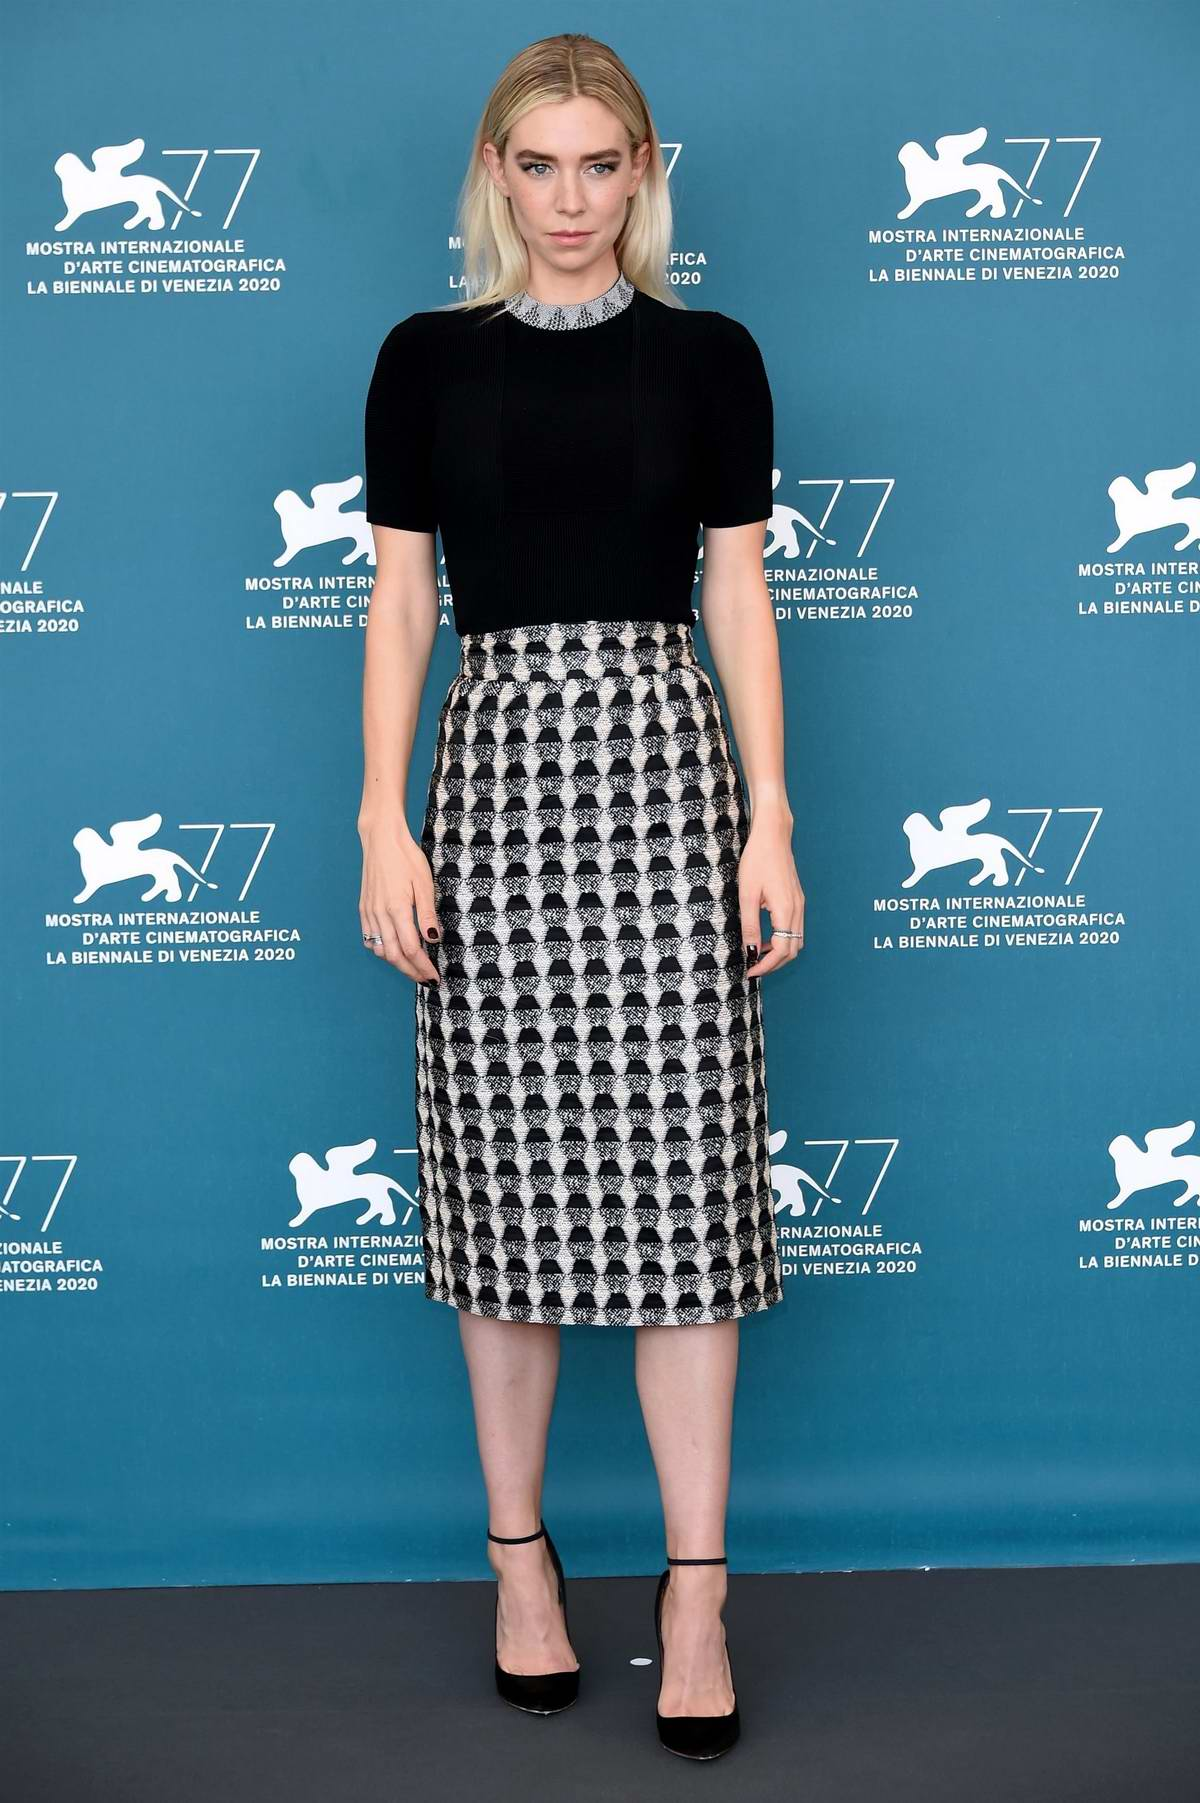 Vanessa Kirby attends 'The World to Come' Photocall during the 77th Venice Film Festival in Venice, Italy